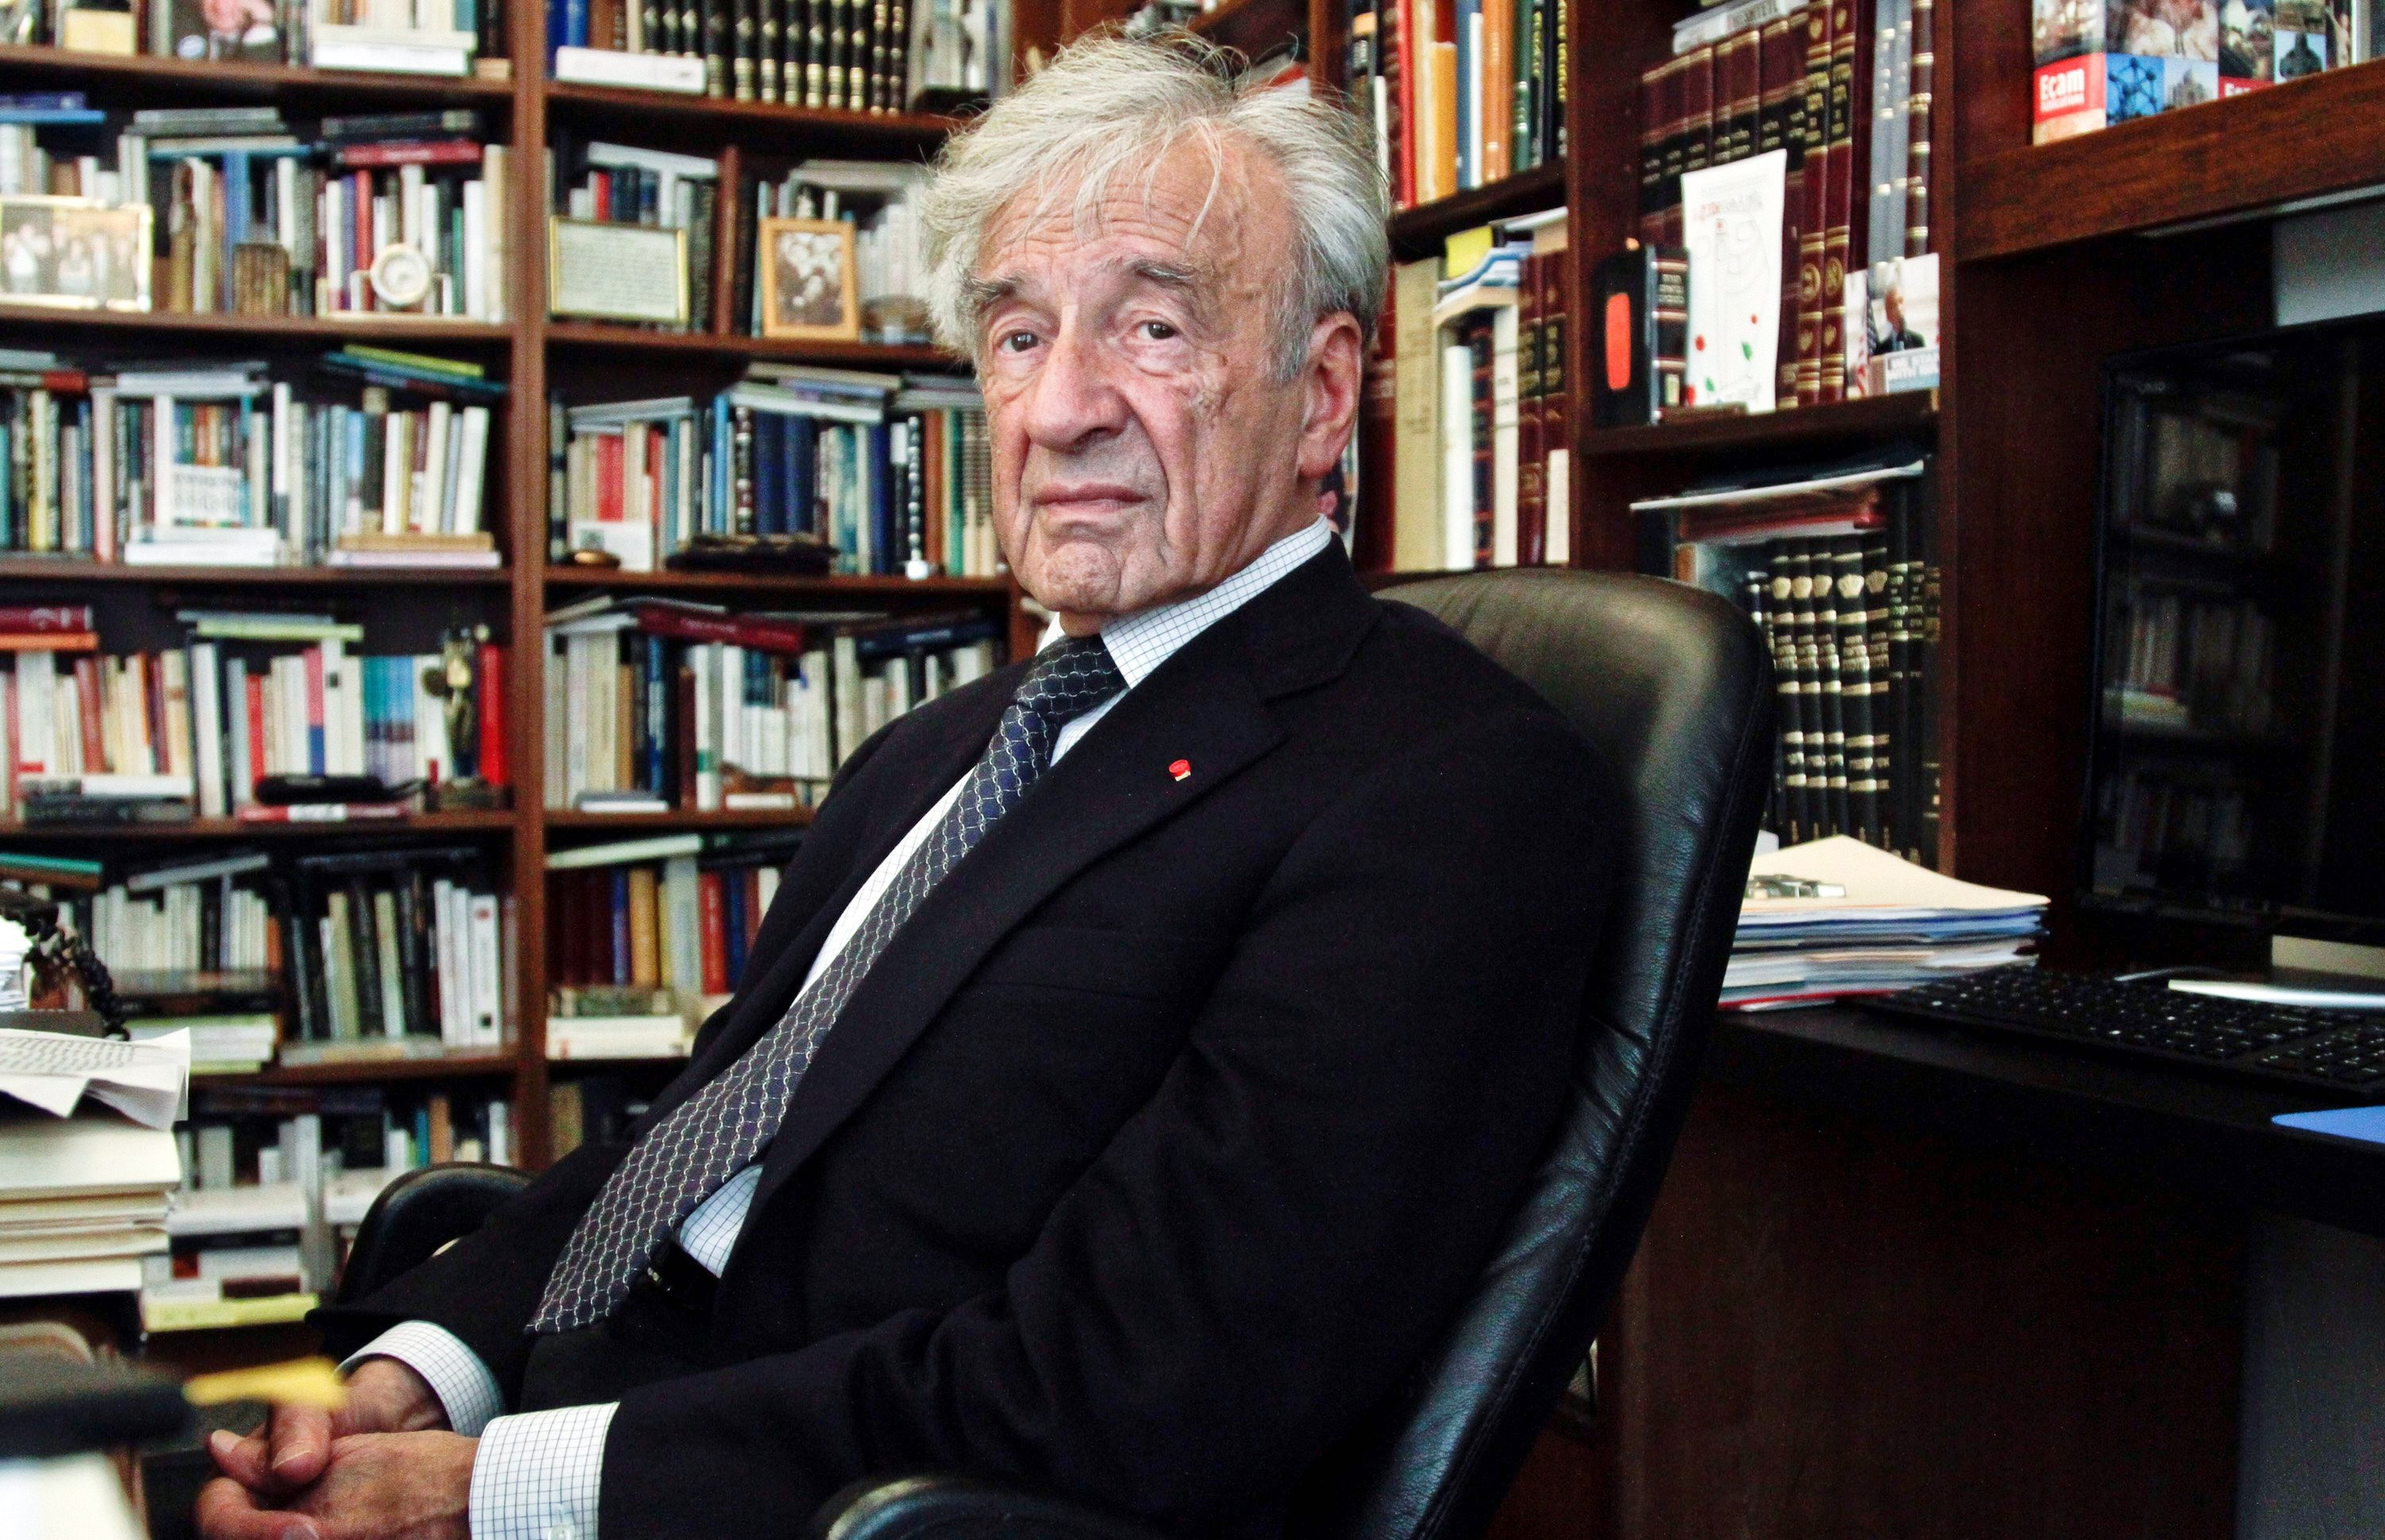 an analysis of night by ellie wiesel 'night' by mr elie wiesel, is a chronicle of his days spent in the auschwitz  concentration camp this book gives us an autobiographical account of the  horrors.